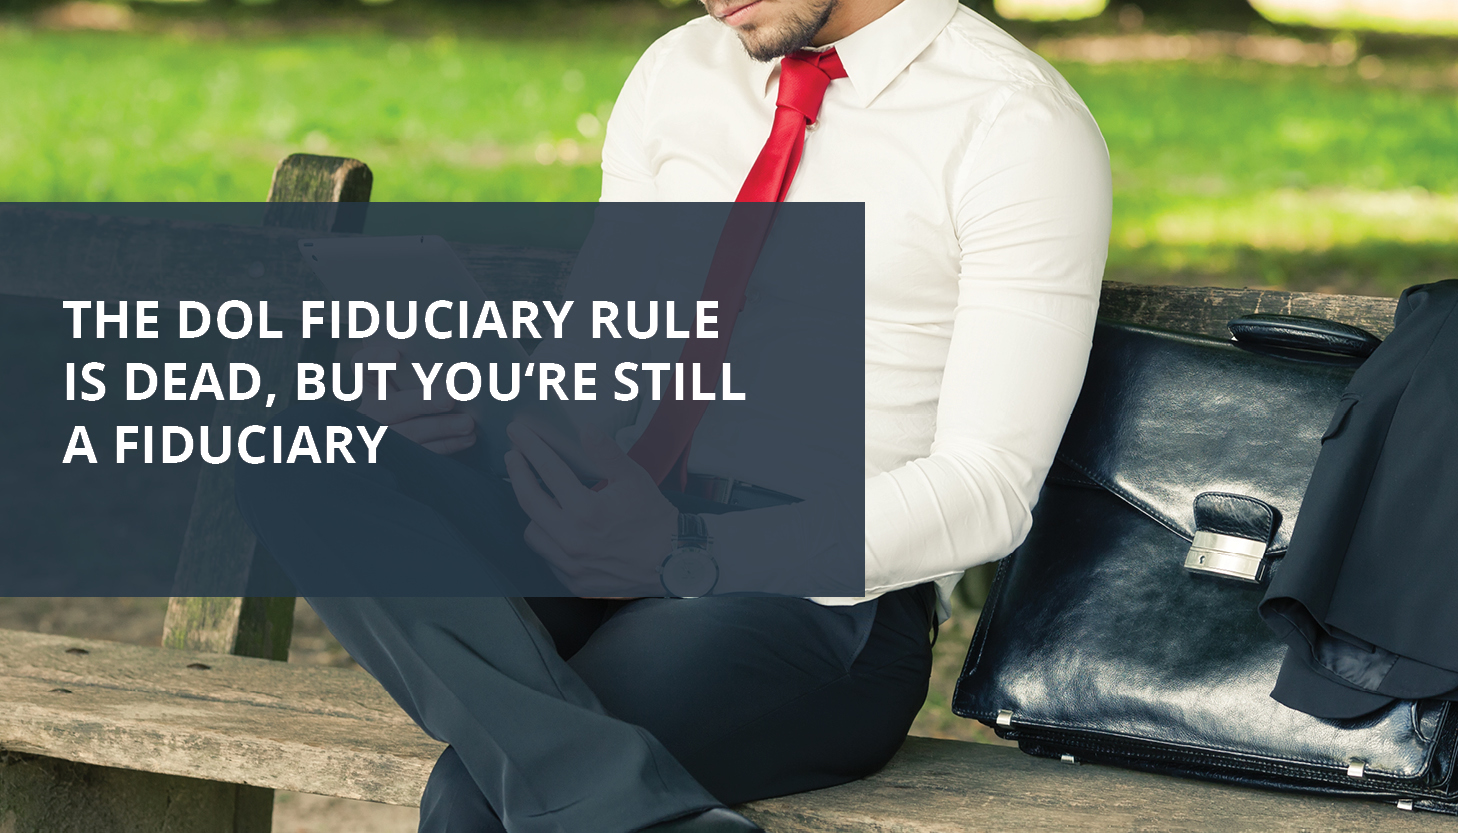 RPM Q4 2018_Pulse Image_Blog Article 1_DOL Rule is Dead, You're still a Fiduciary